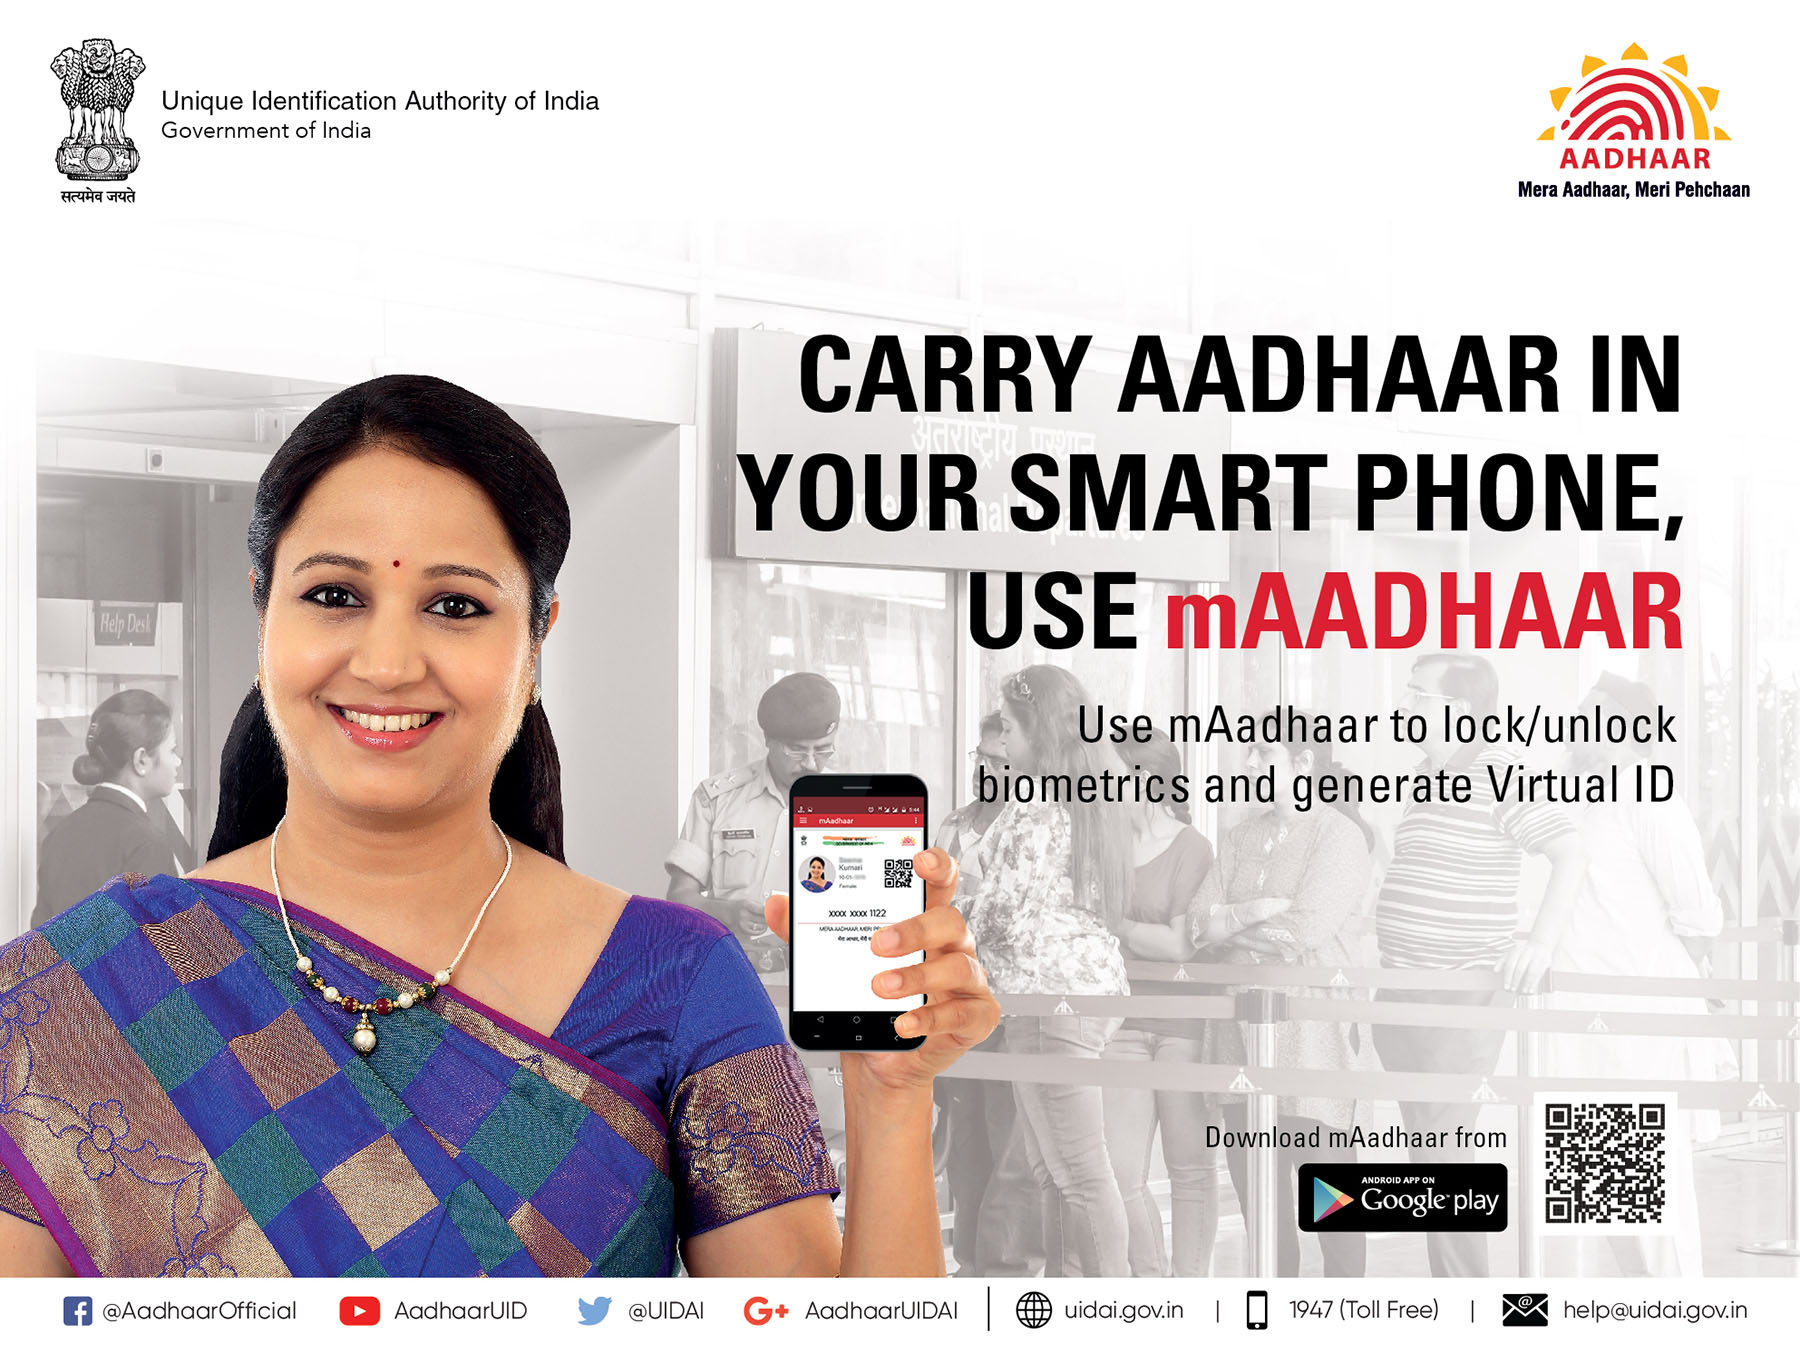 Carry Aadhaar always, Use mAadhaar